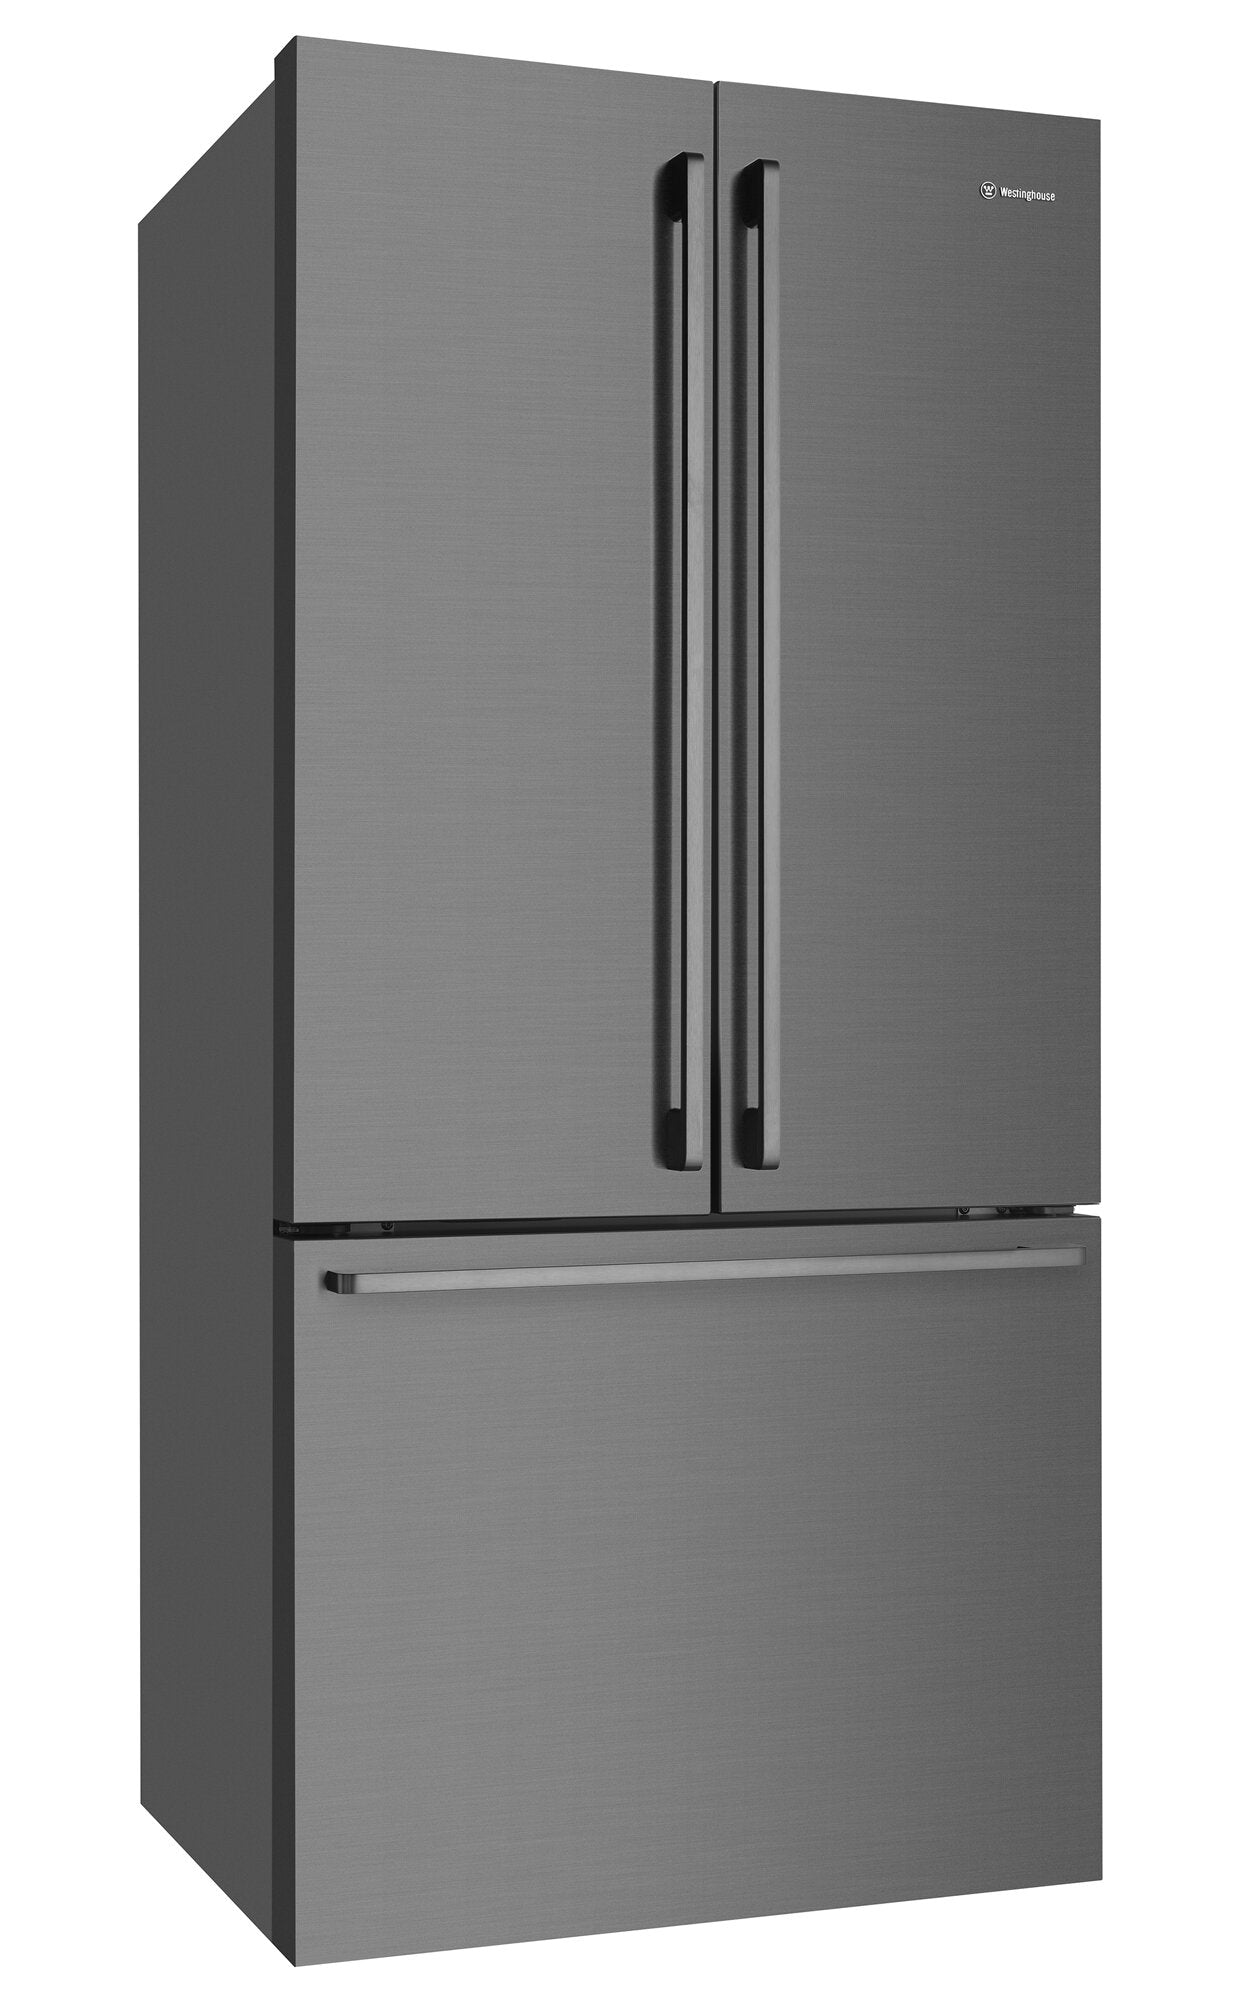 Westinghouse WHE5204BB 524L Dark Stainless Steel French Door Fridge